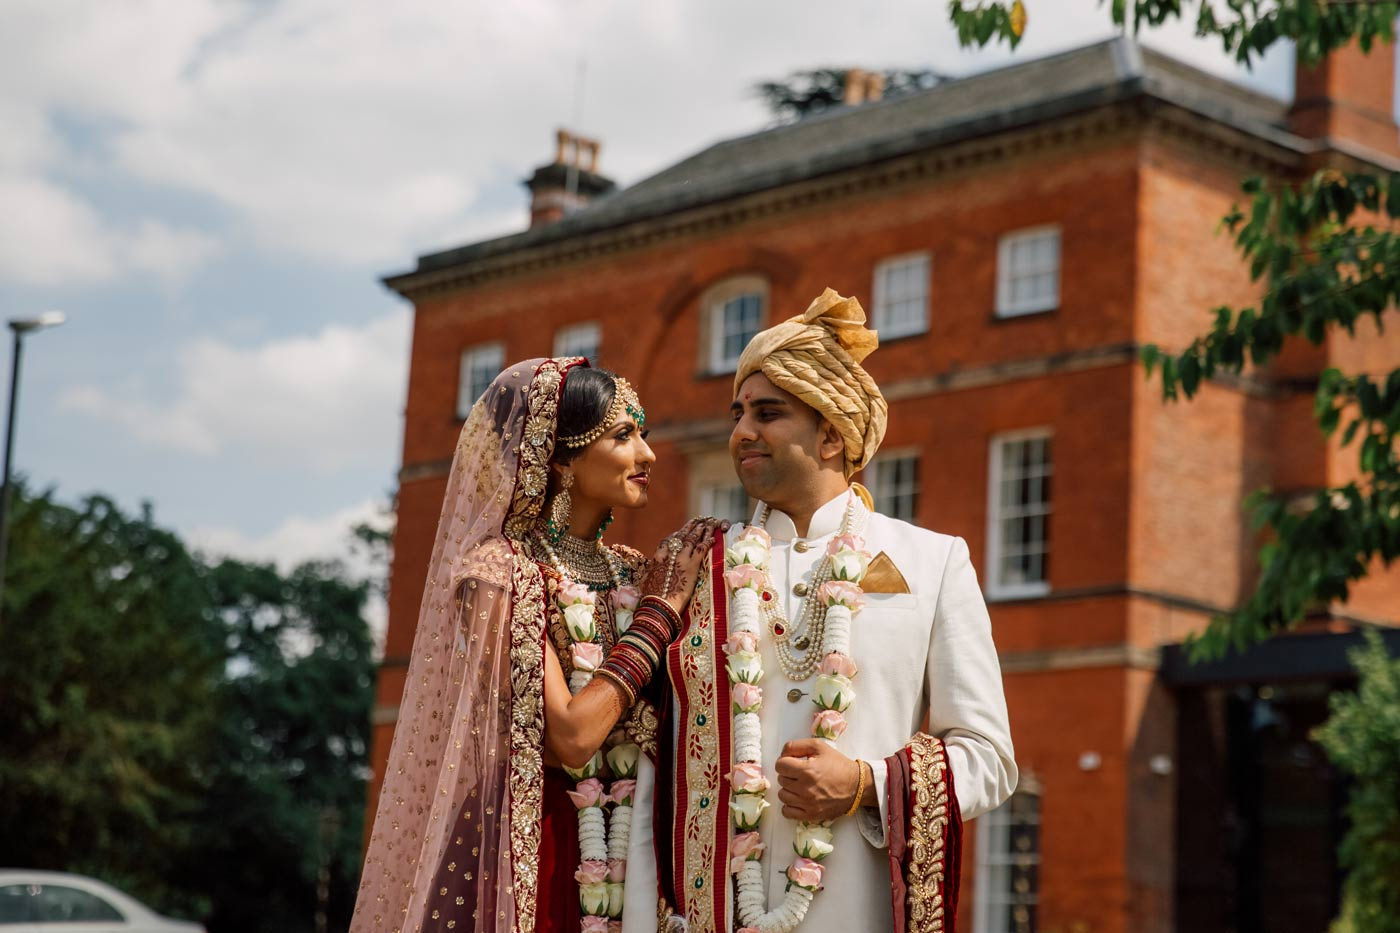 Indian Wedding Photography and Videography at Winstanley House // Kishan & Florika